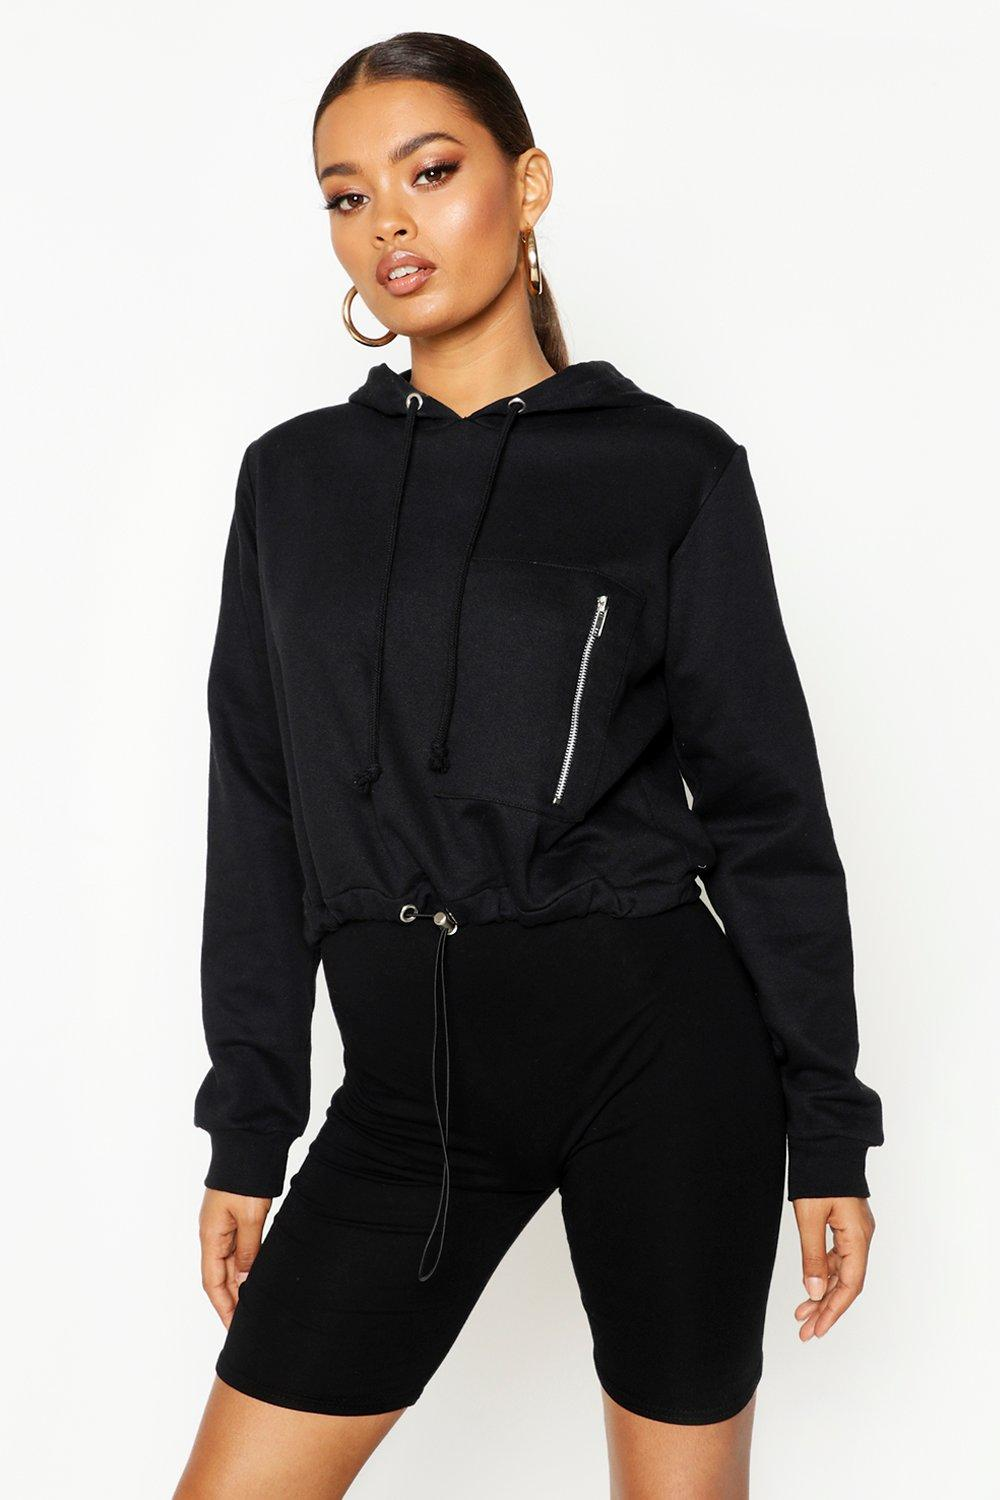 boohoo Womens Utility Pocket Hoody - Black - Xl, Black